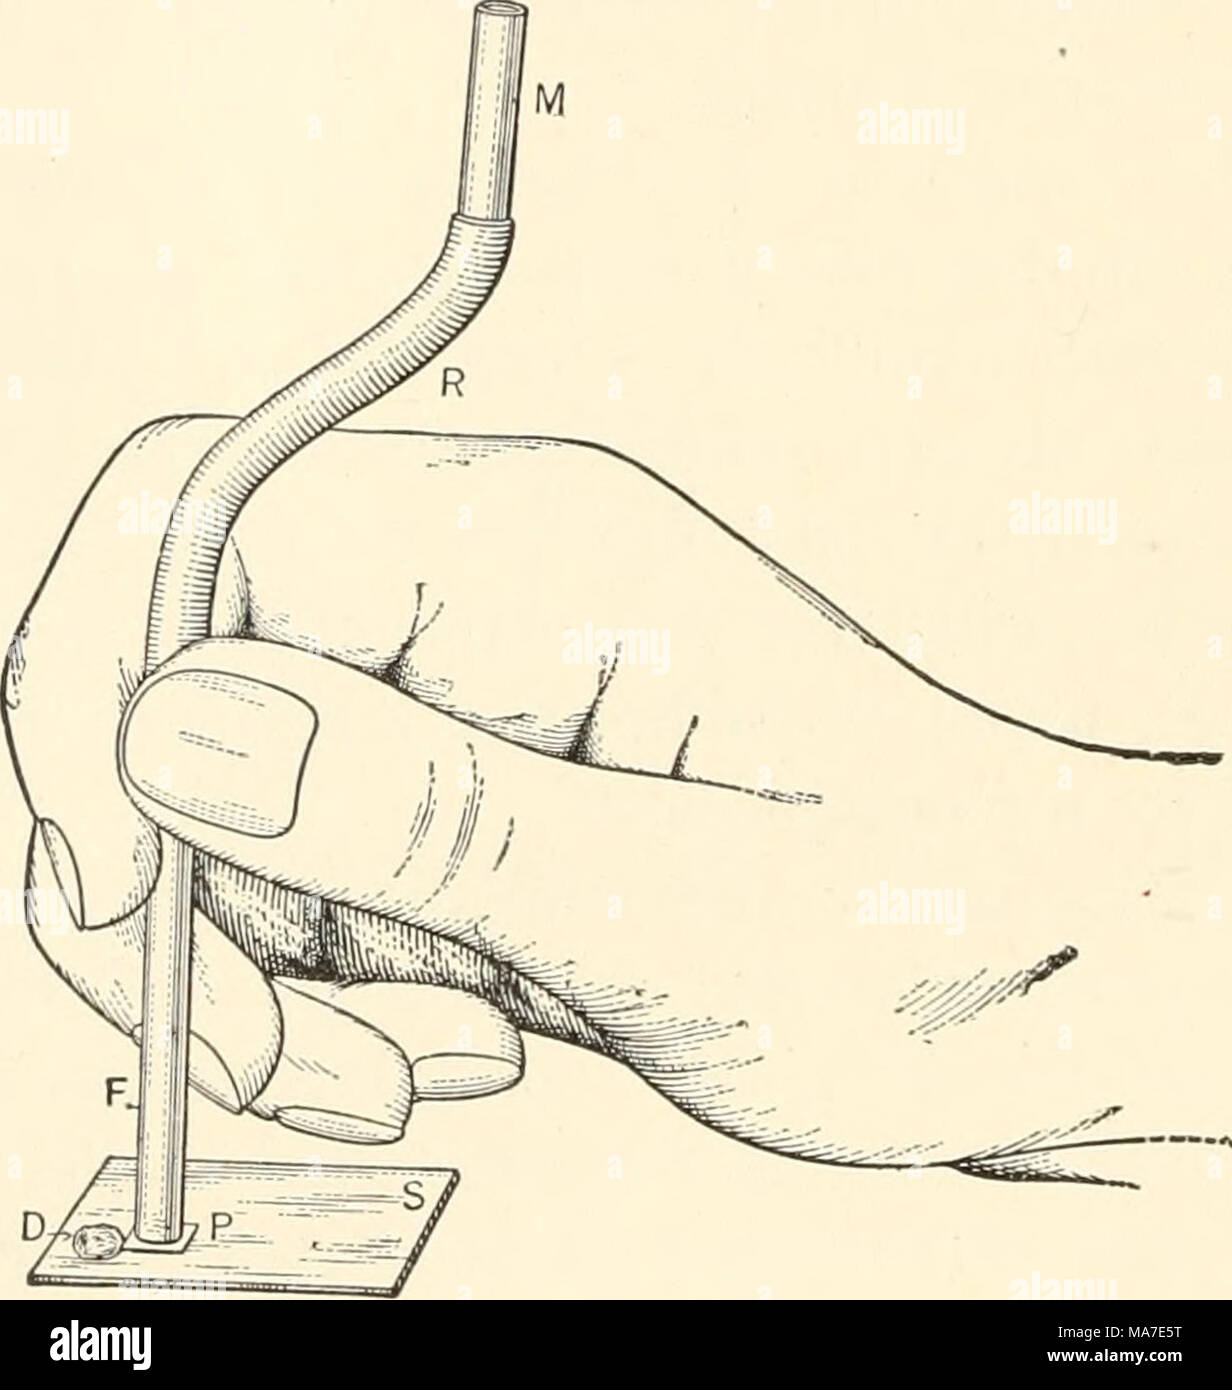 . Elementary chemical microscopy . Fig. 149. Behrens Method of Filtration. A little practice is required in order to apply the proper pressure of the glass tube upon the filter paper and to maintain this pressure uniformly without tipping the tube out of its vertical position. The chief difficulties encountered in rapid work are: (1) The danger of carrying the filtrate up into the mouth or into the rubber tube by air bubbles, which are always drawn into the tube when the liquid to be filtered has all been absorbed by the filter paper and sucked into the tube, and (2), it not infrequently happe - Stock Image